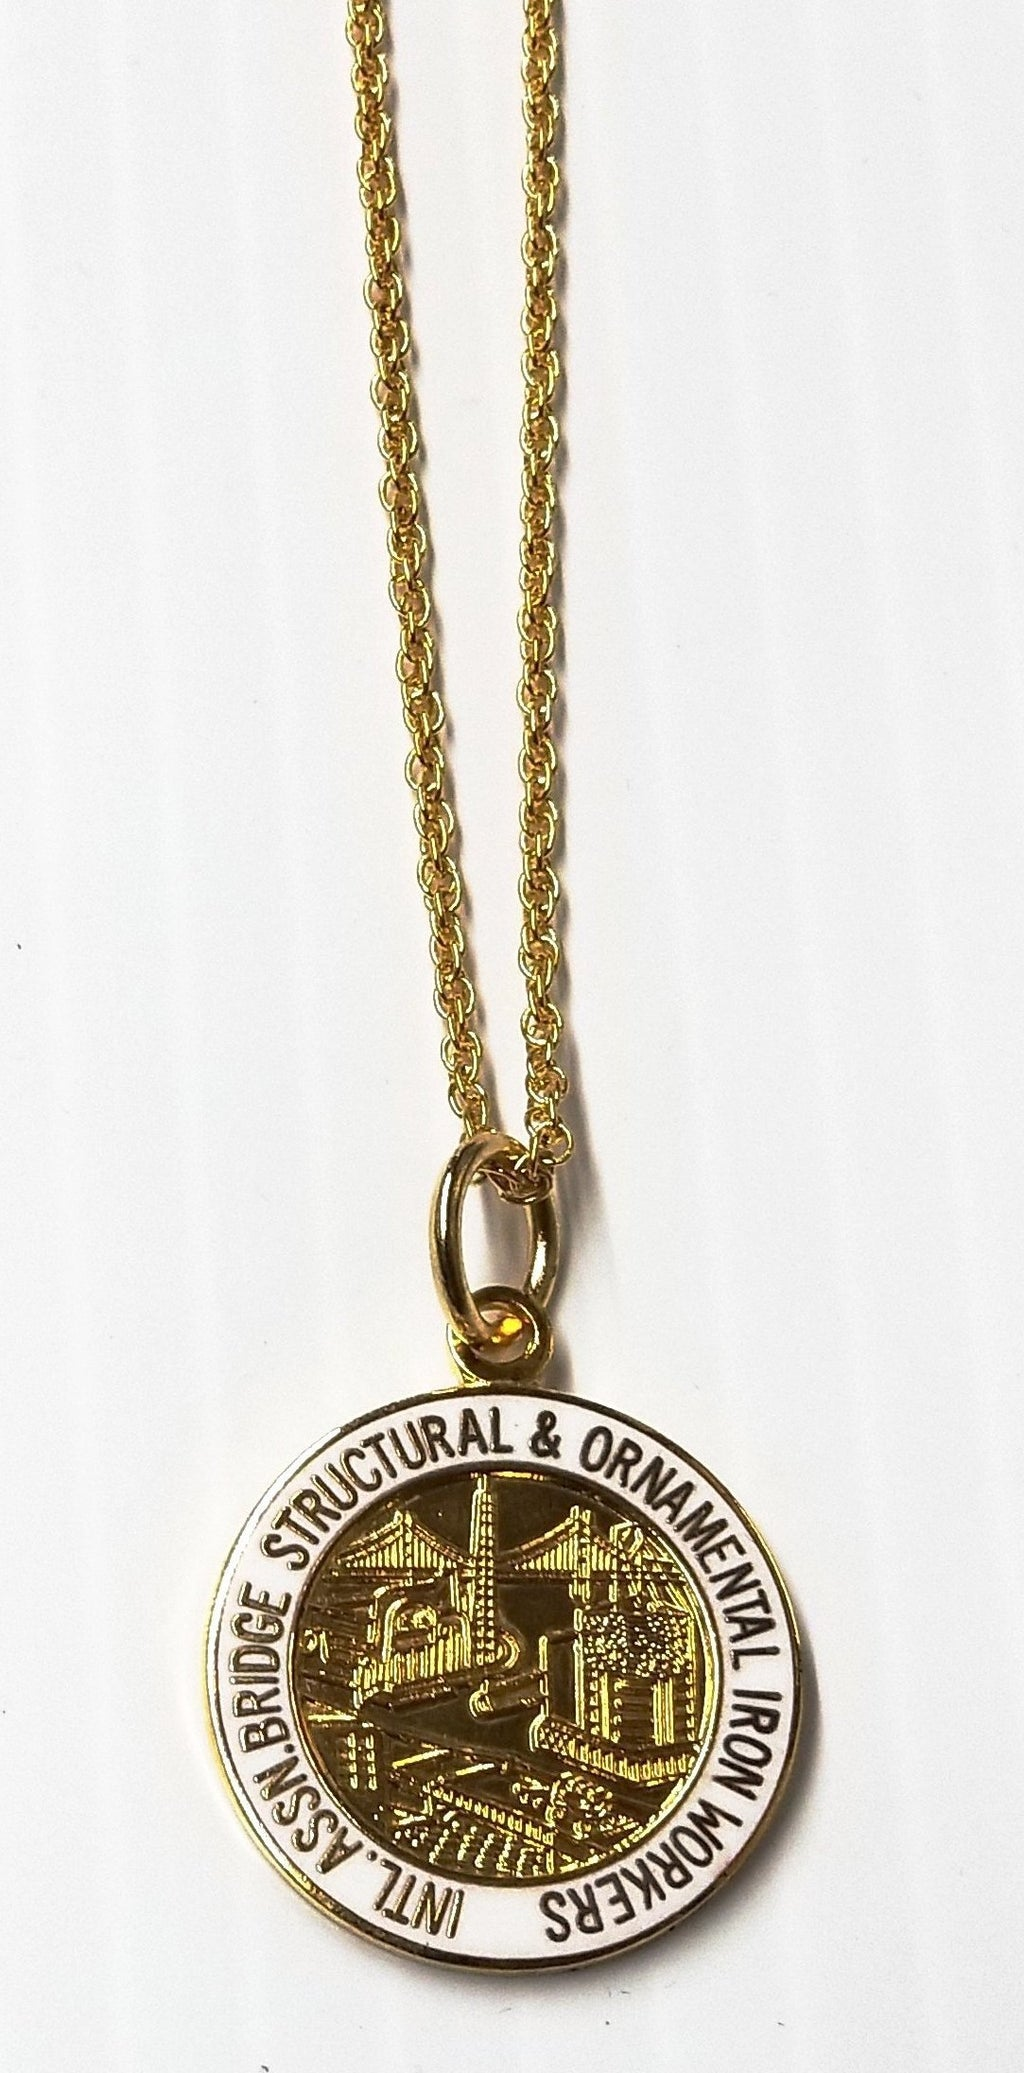 International Ironworker Necklace with International Logo